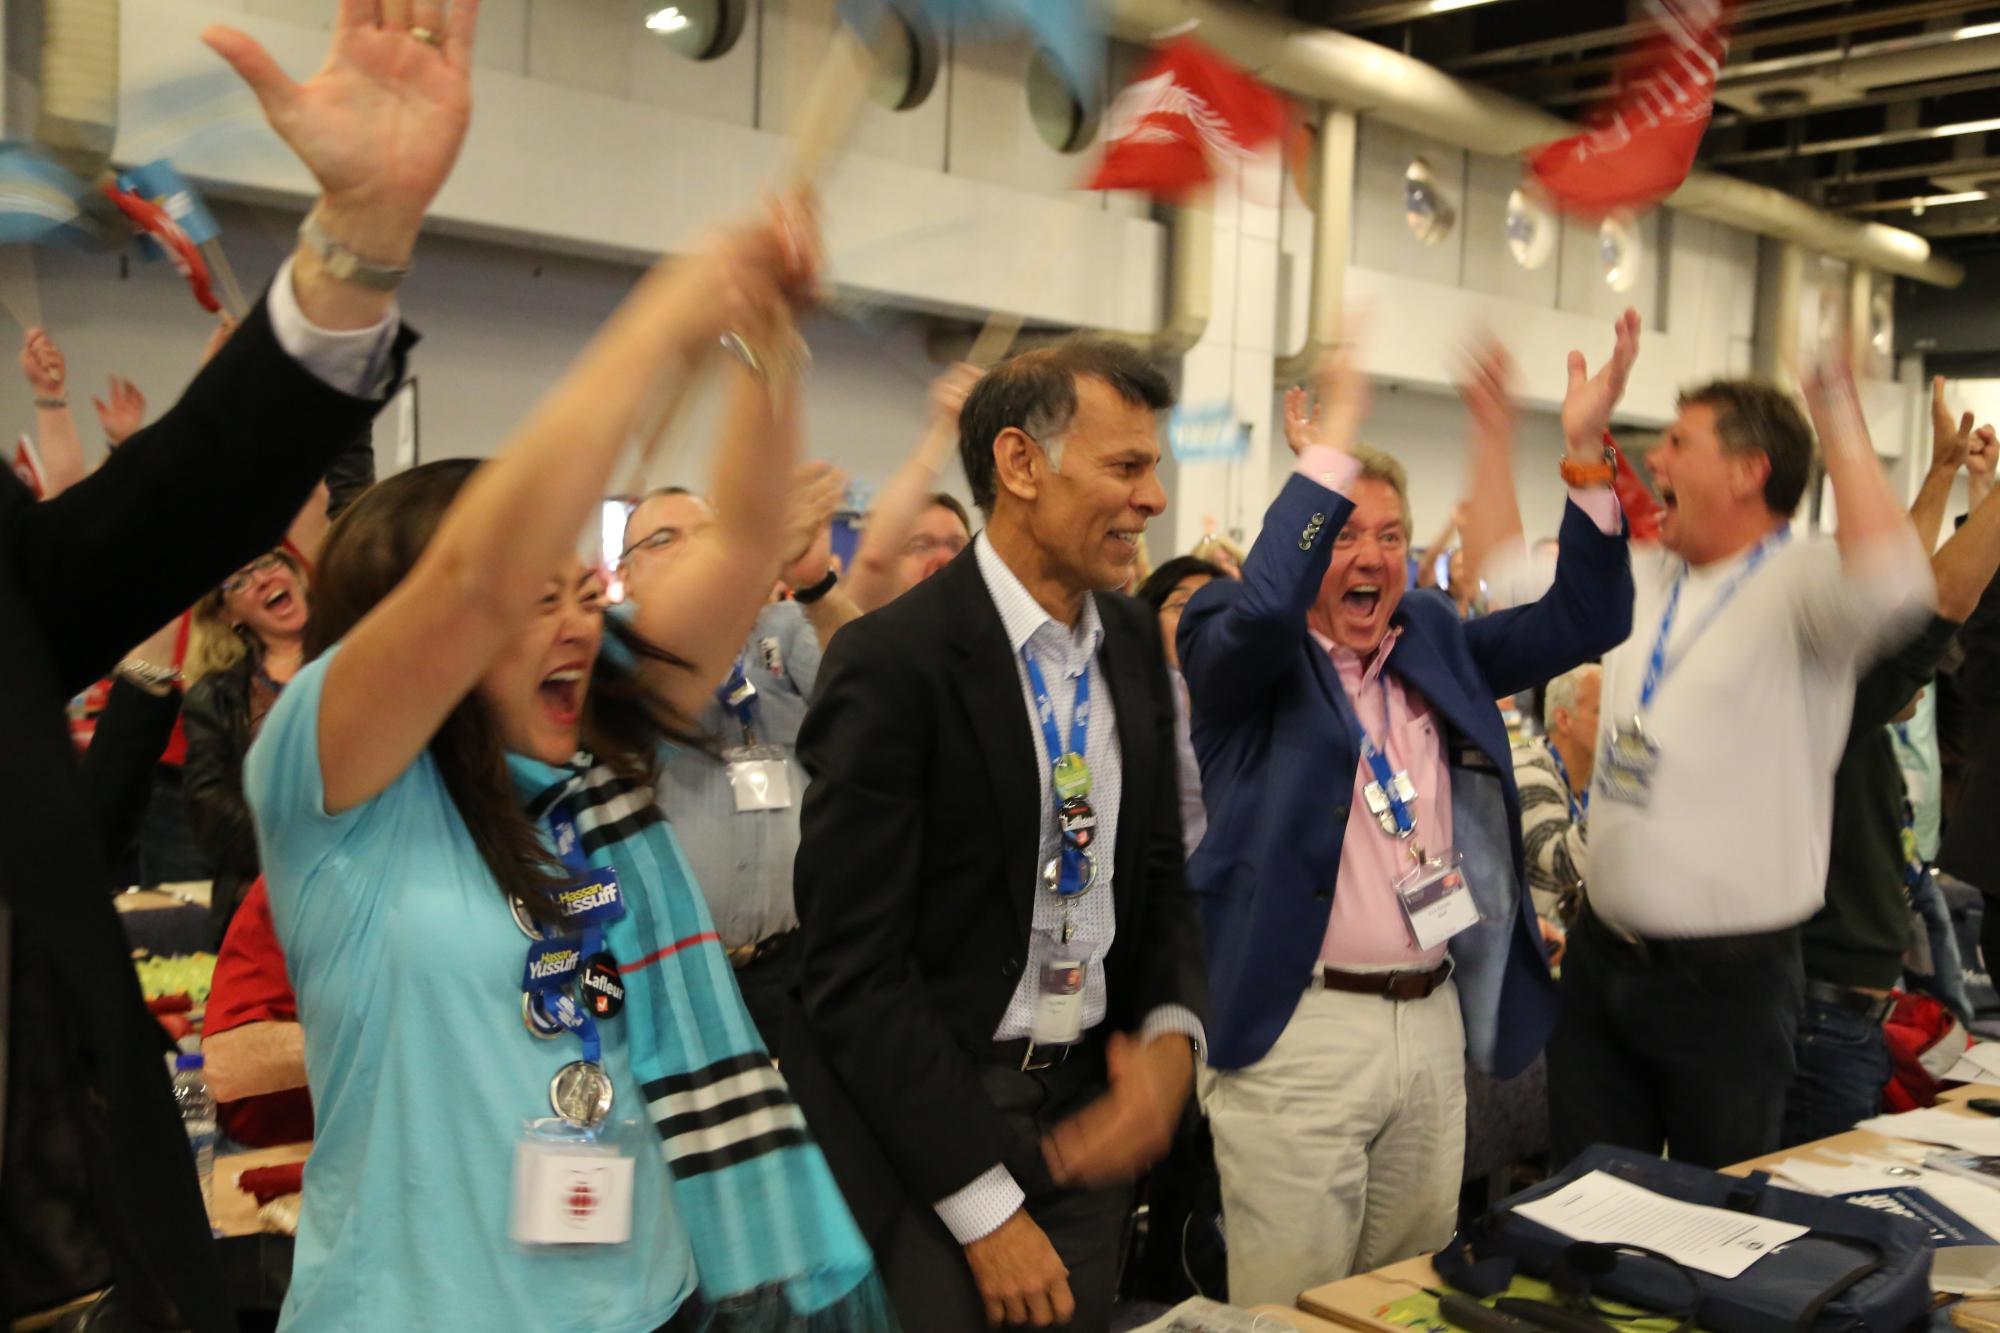 Chants of solidarity were heard throughout the convention hall in montreal as yussuff s supporters rushed to embrace the new president